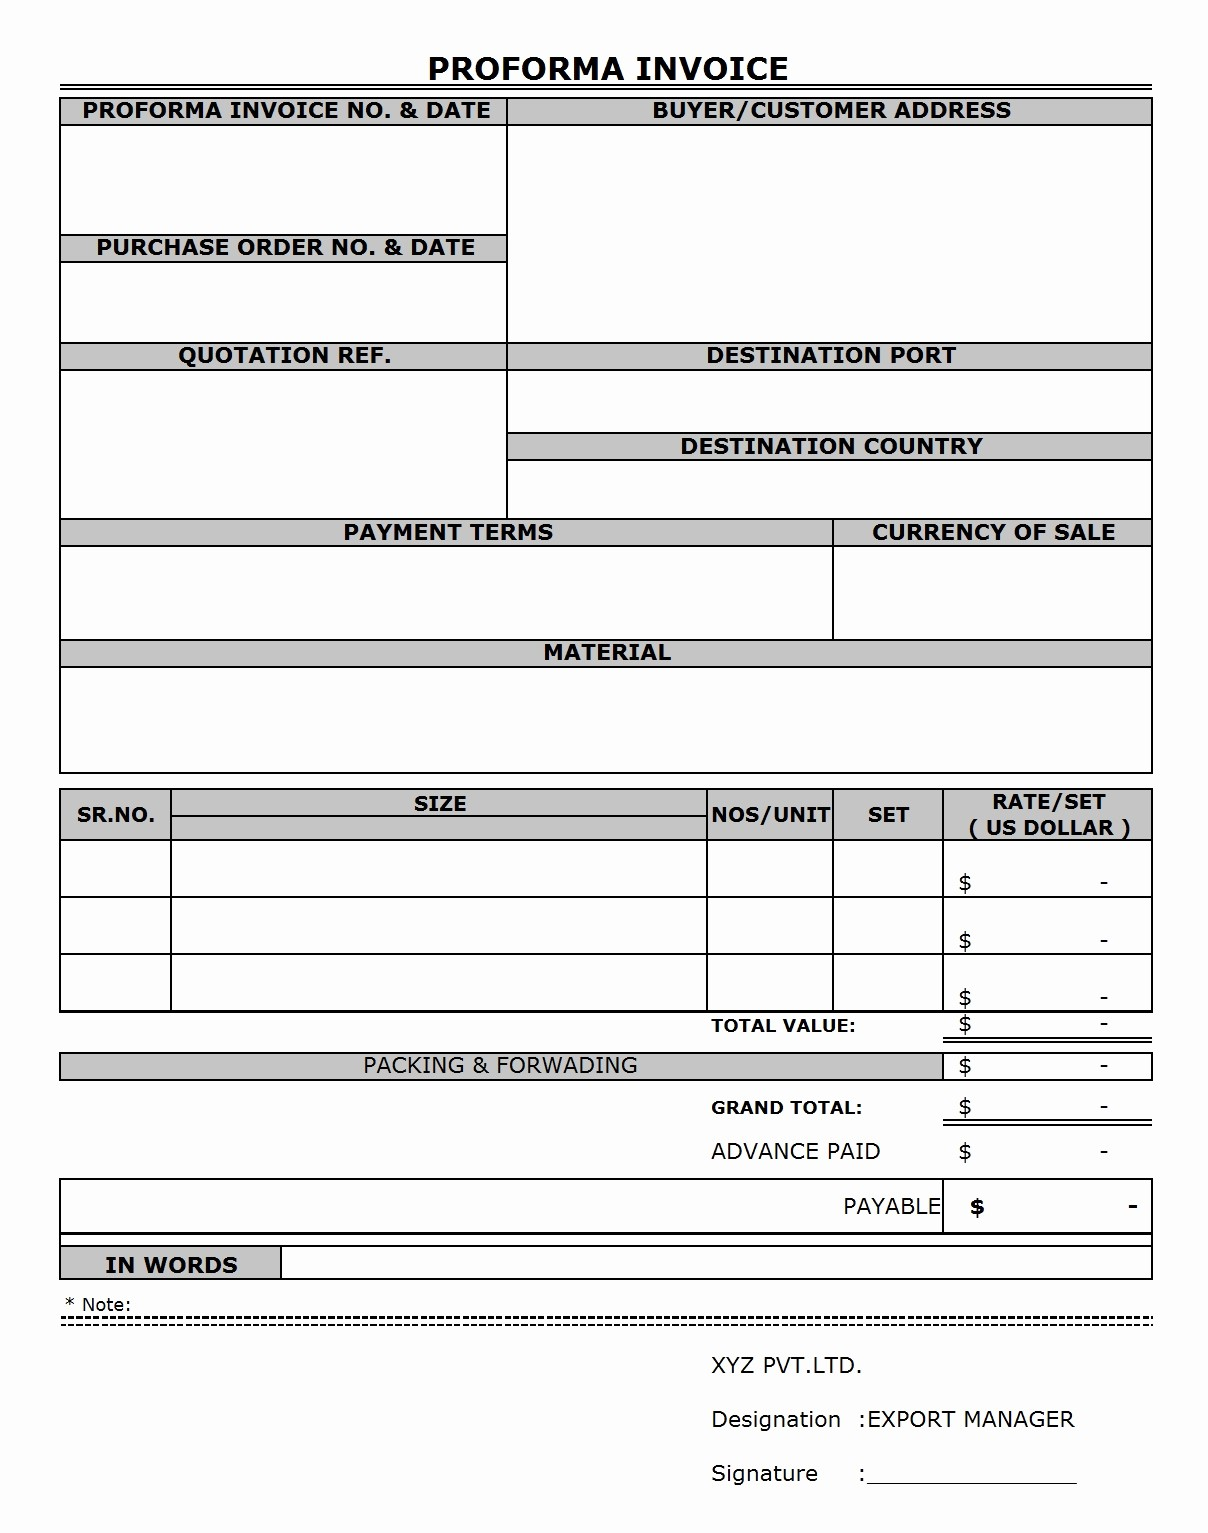 Sample Invoice format In Excel Beautiful Proforma Invoice Sample Excel Invoice Template Ideas